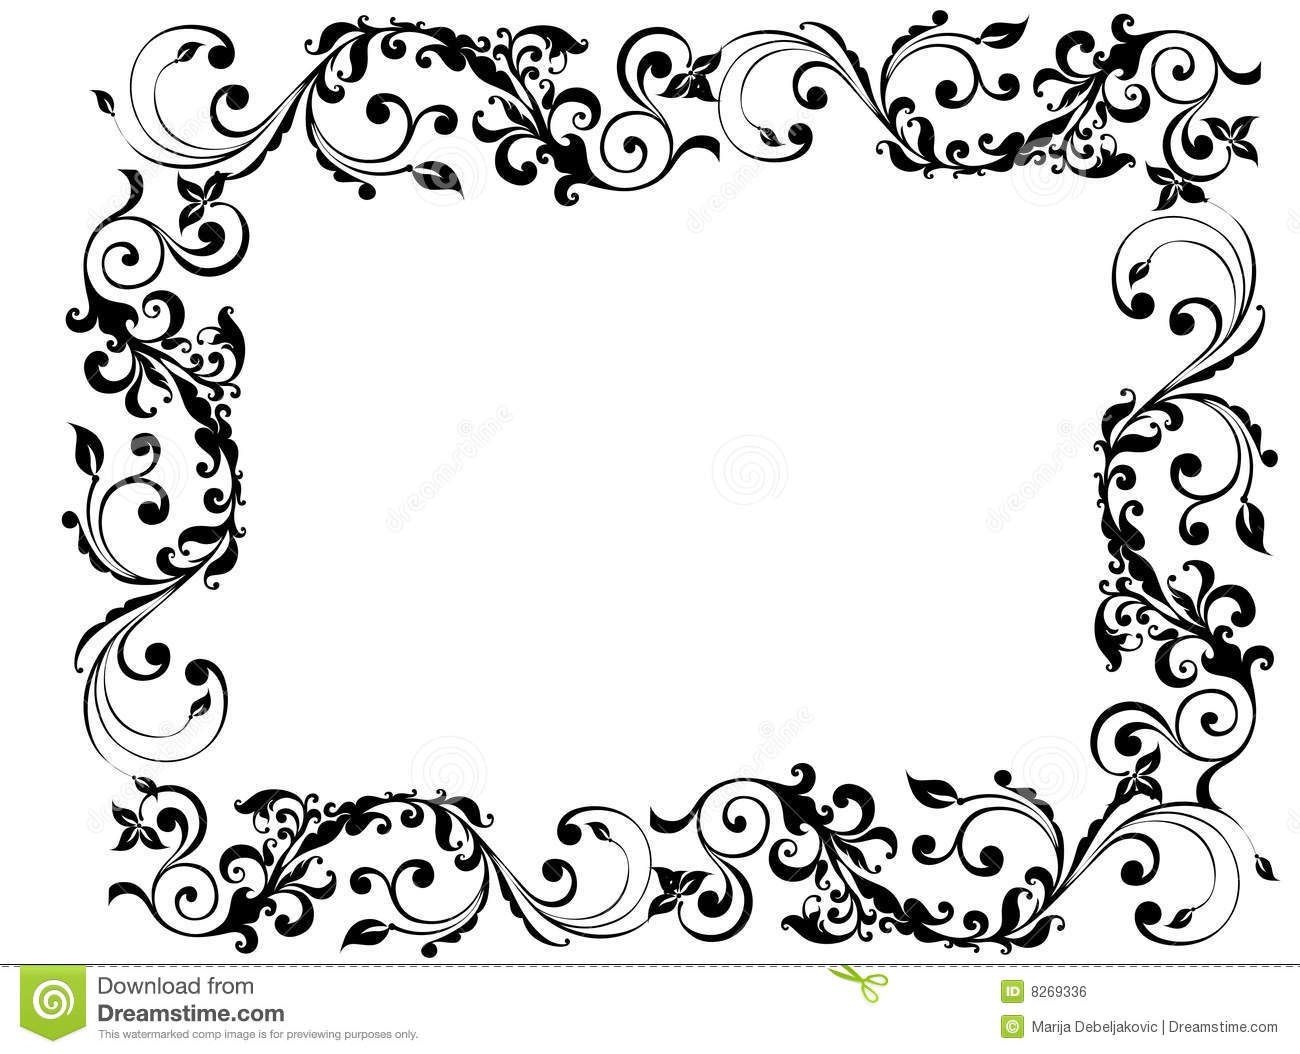 Royalty Free Stock Photo Vector Ornate Perfume Decorative Patterned Design Image36236535 as well Halloween Spider Web 705545 as well Stock Illustration Valentines Day Card Flowers Heart Shape Birds Zentangle Interpretation Black White Vector Illustration Best Image65632866 together with June Contest Winners also 452196907. on card clipart